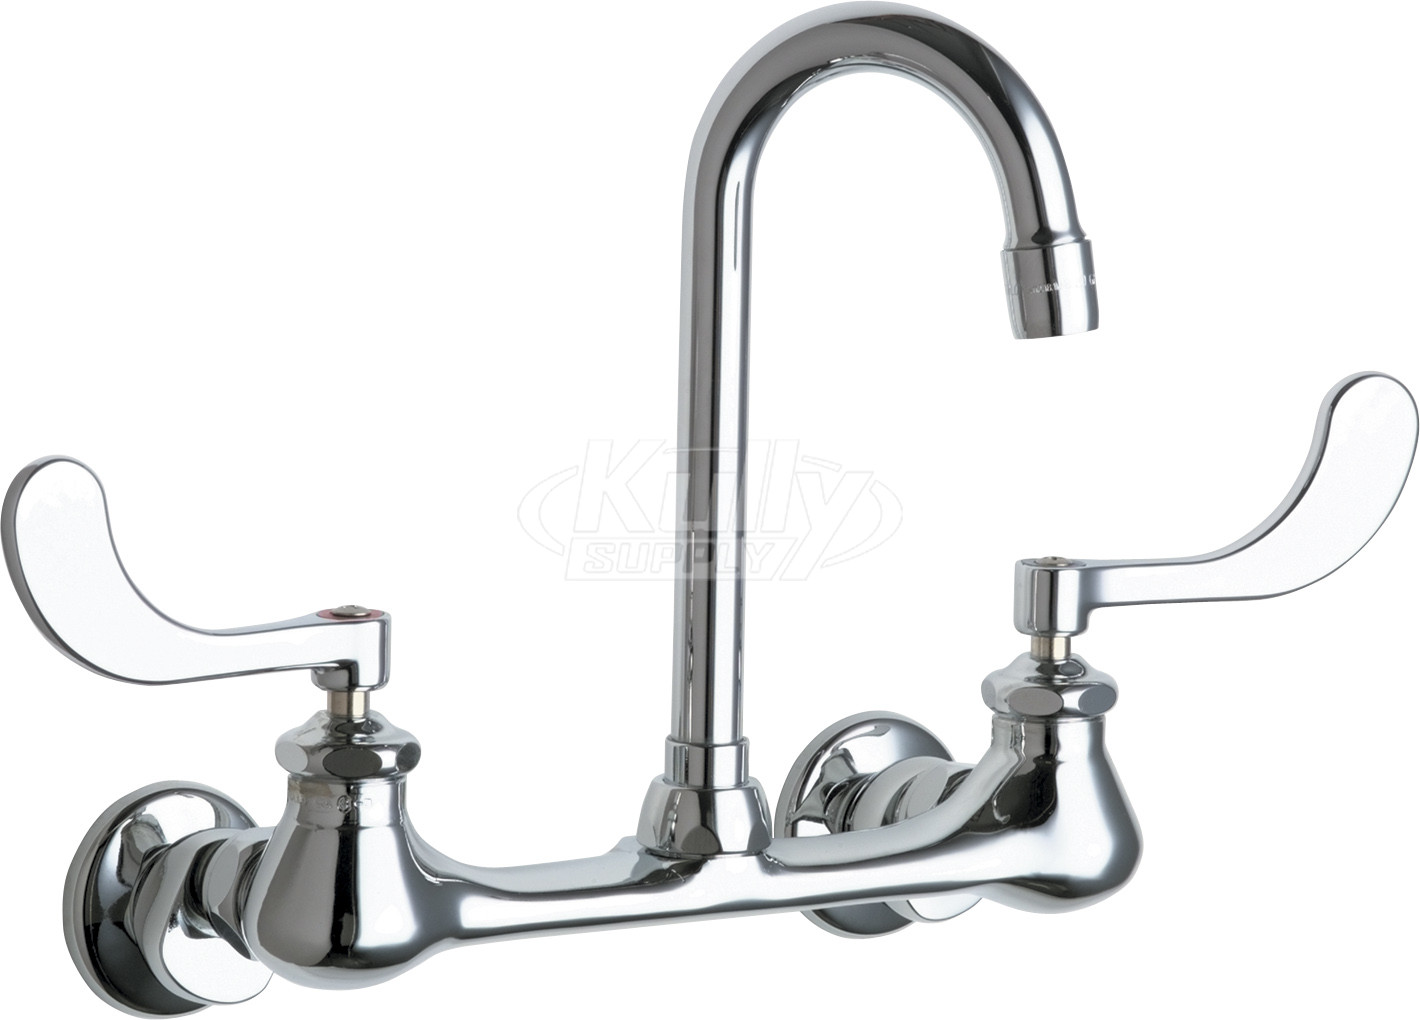 Chicago 631 Abcp Hot And Cold Water Sink Faucet